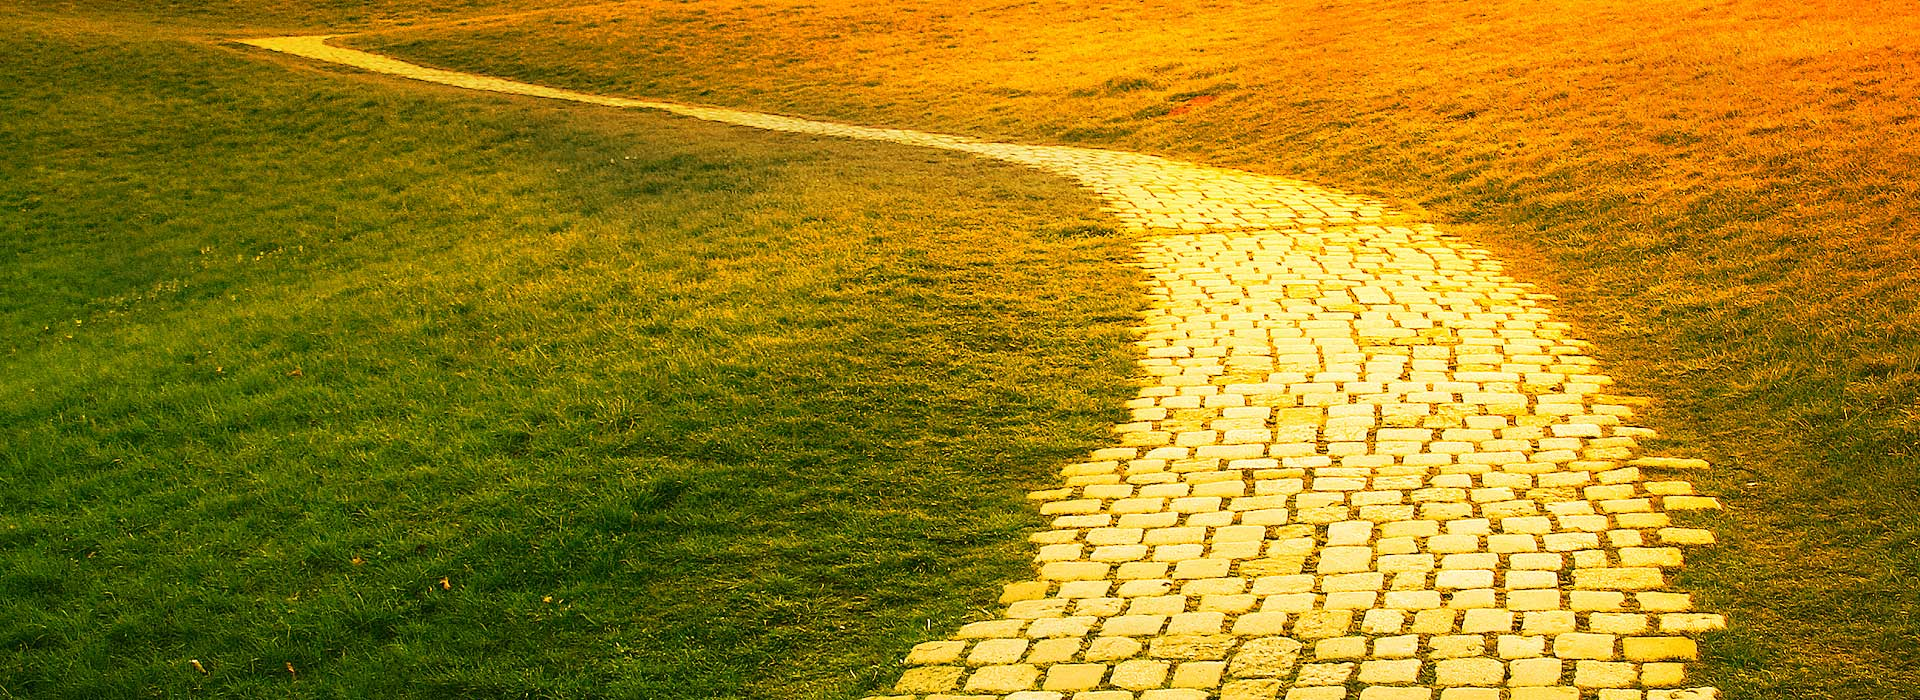 The yellow brick road of leadership